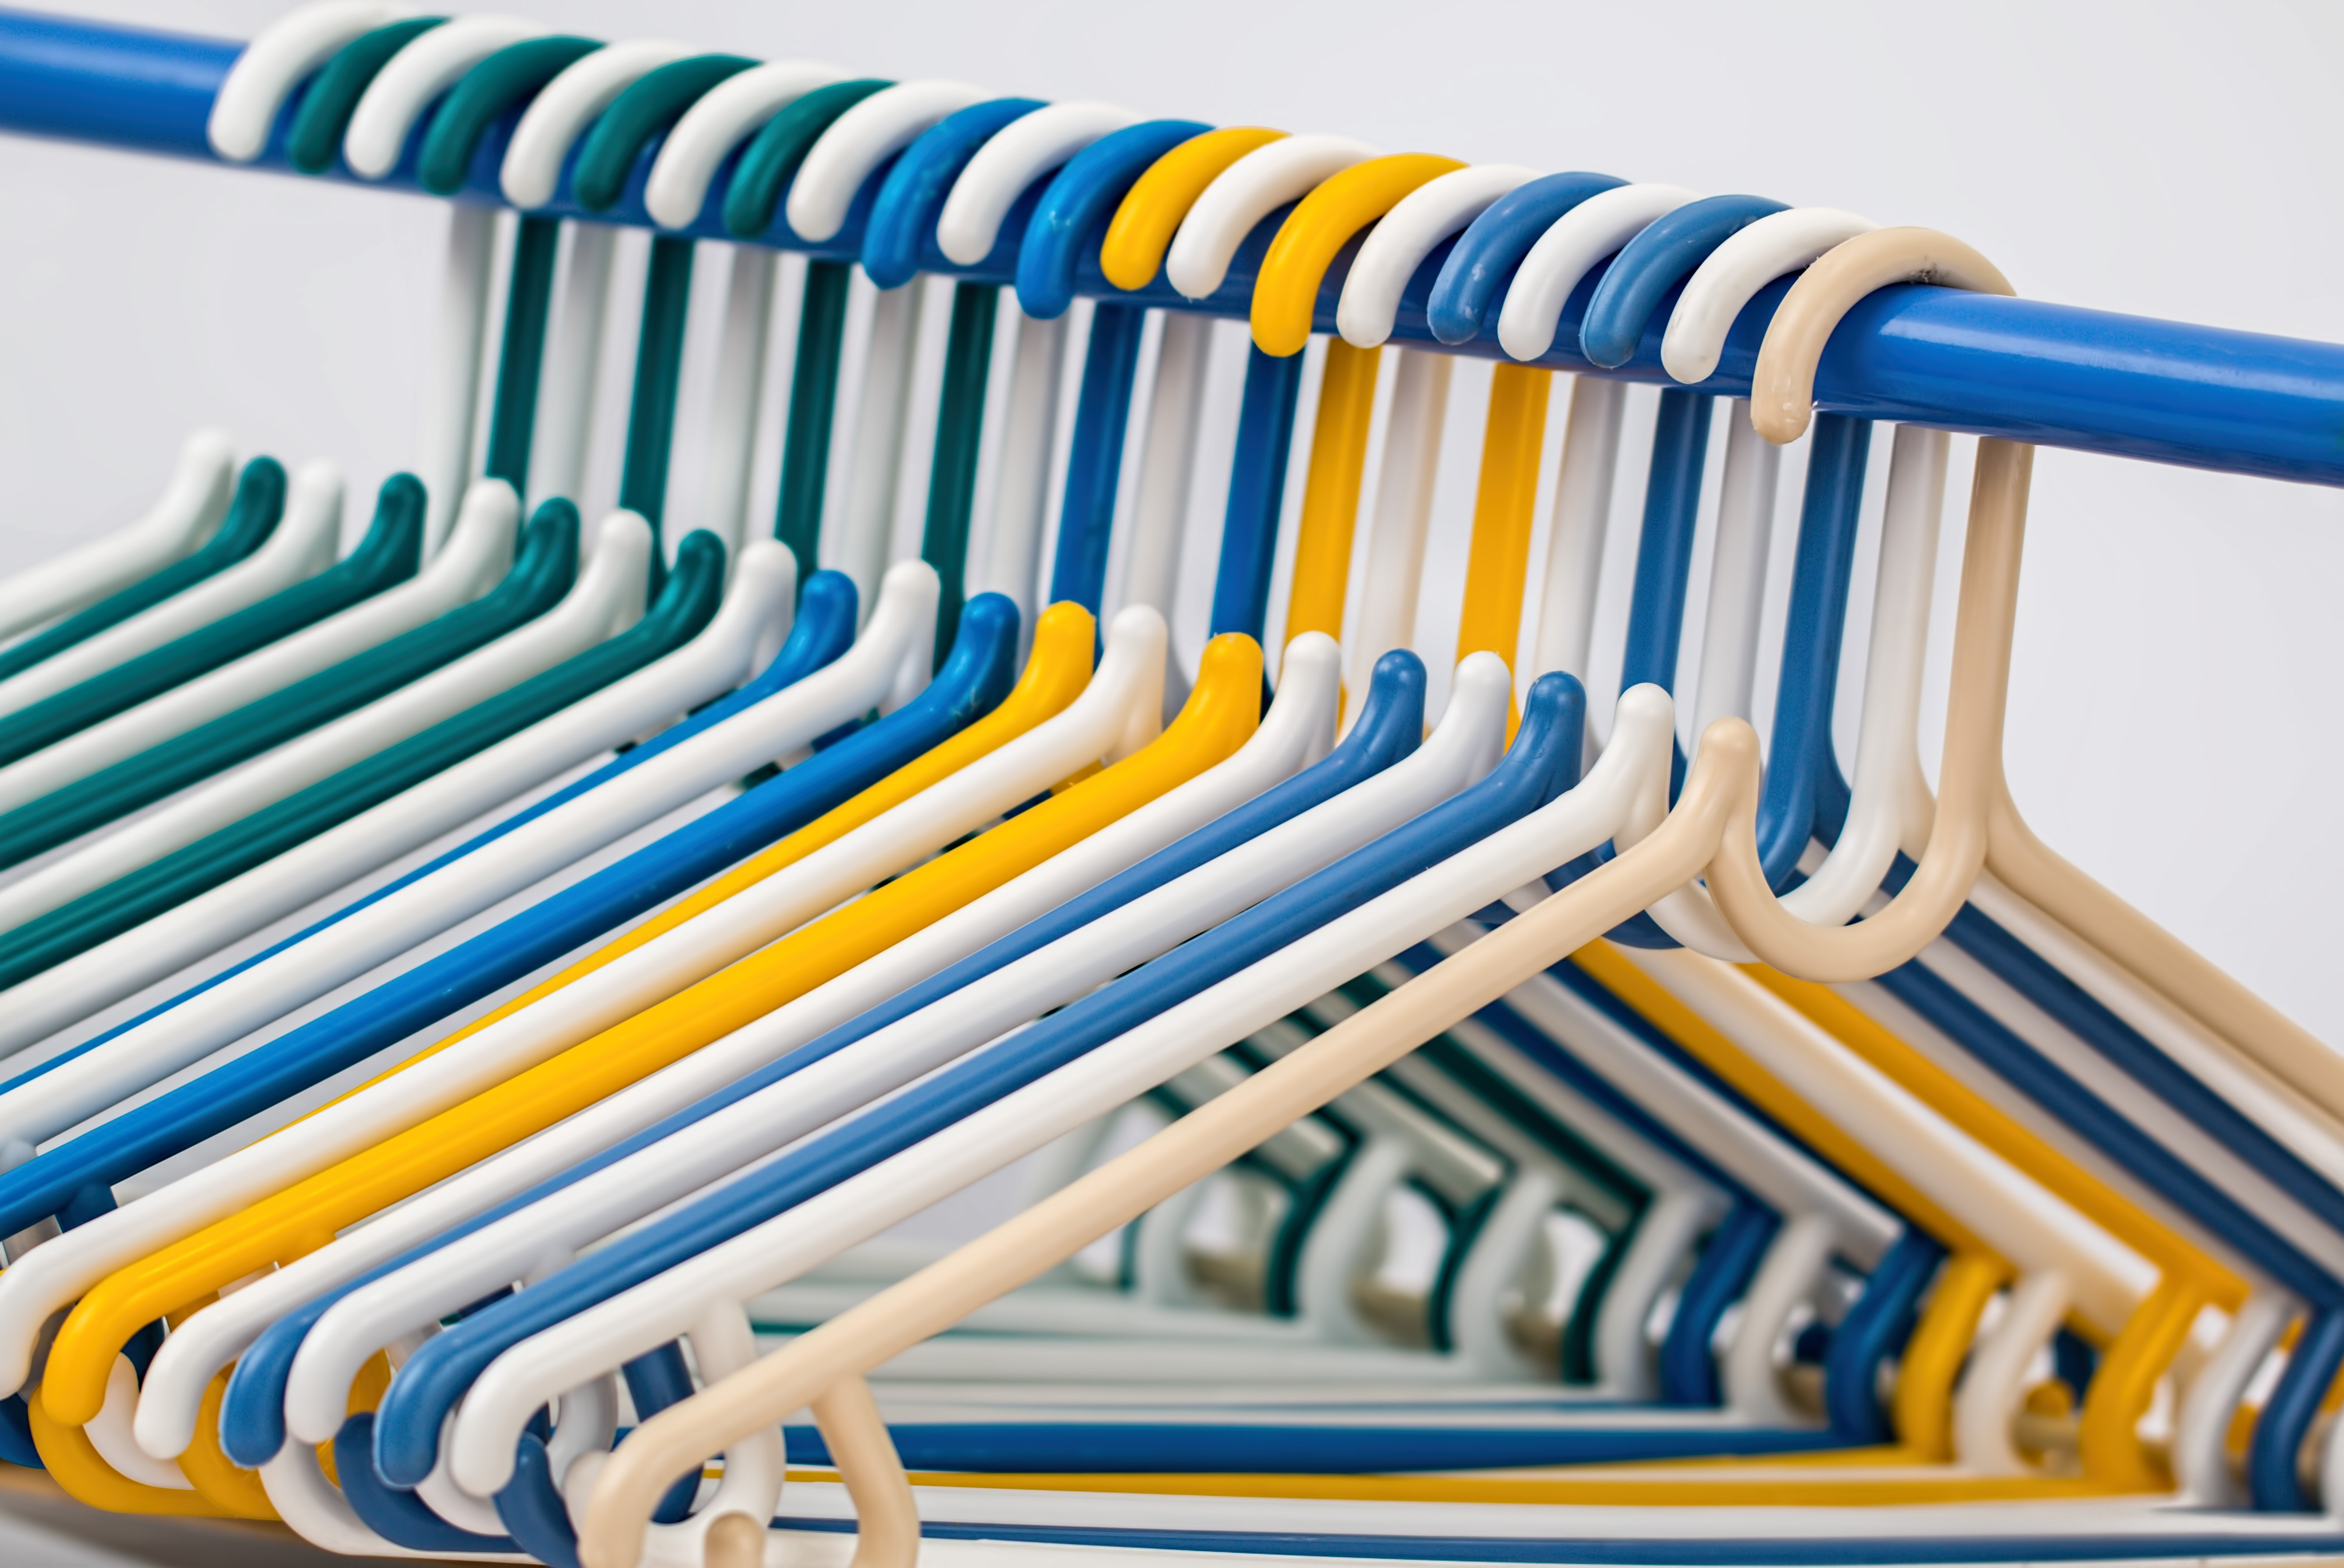 White Blue Yellow and Green Plastic Clothes Hanger · Free Stock Photo